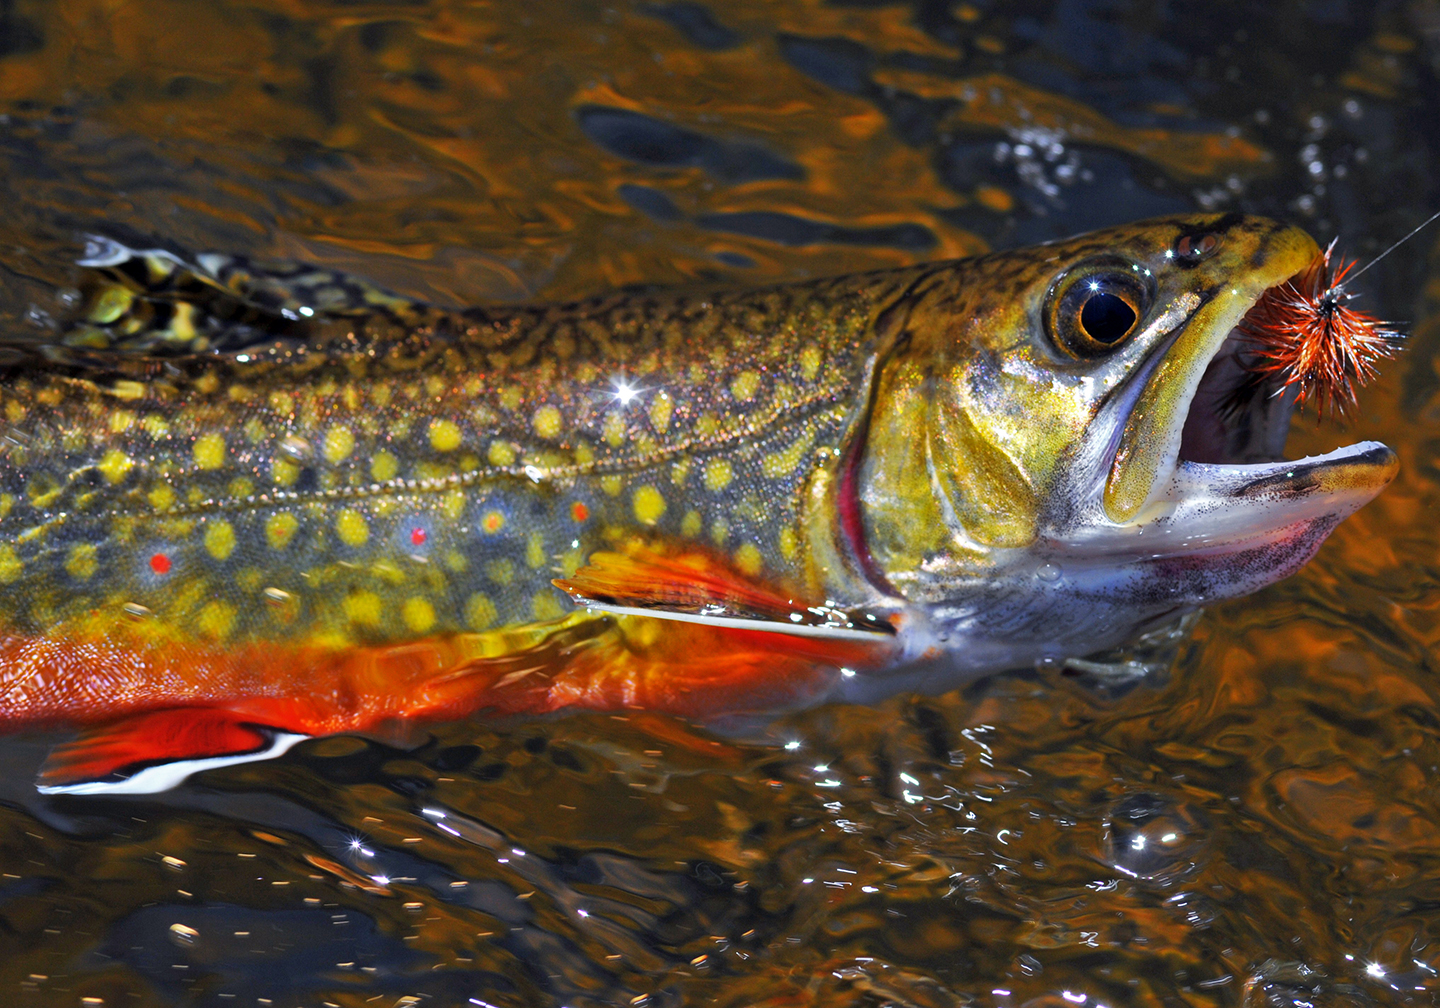 A brook trout with its head out of the water after being hooked by a fishing fly which is in its mouth.